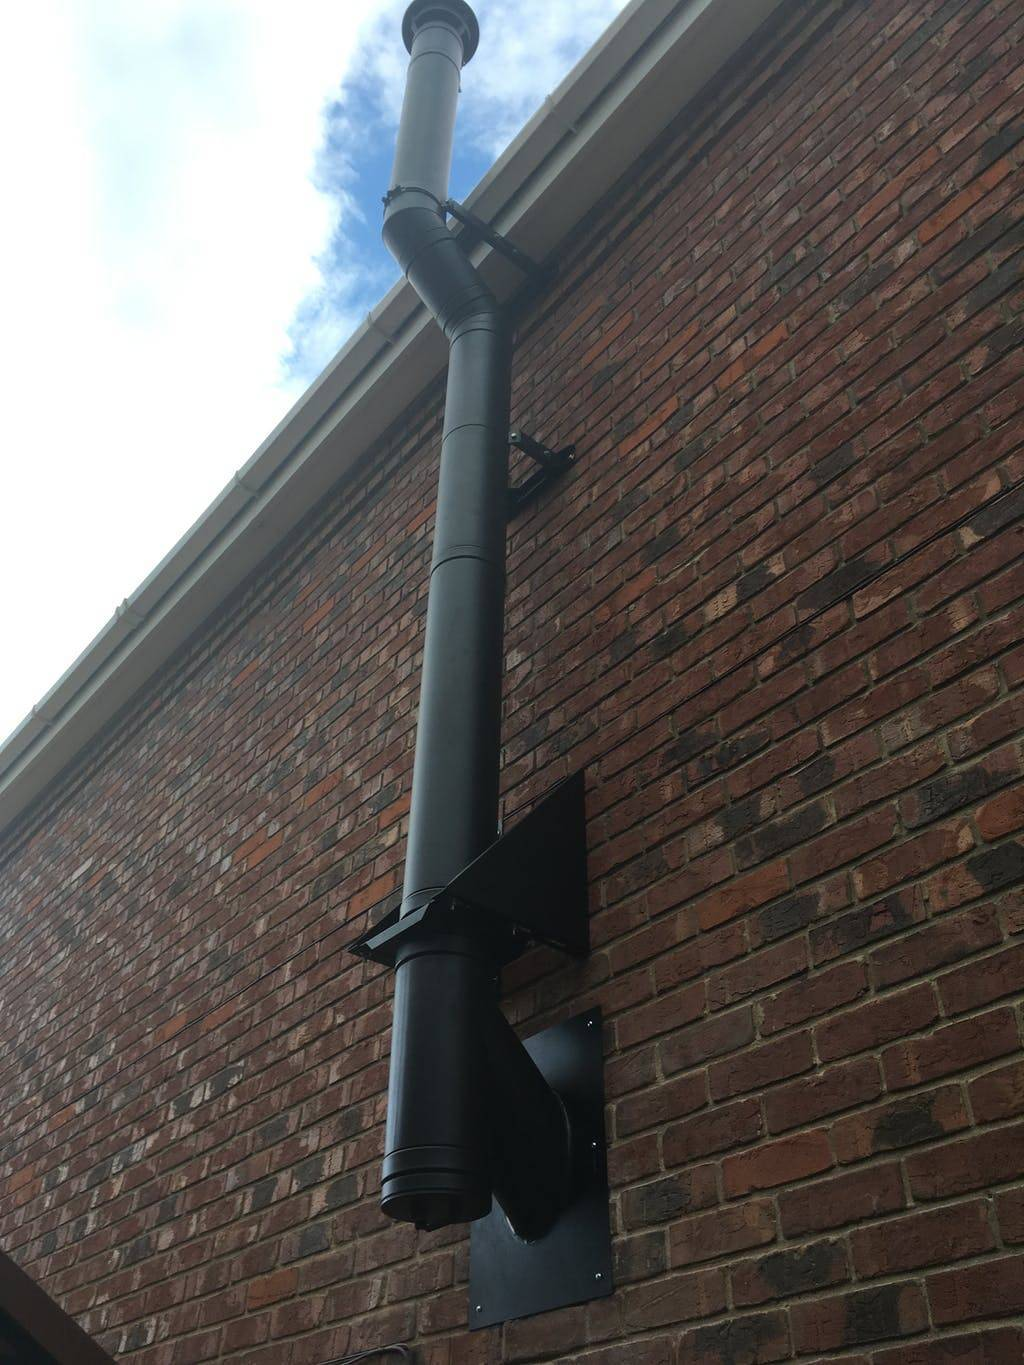 Installing A Twin Wall Flue Chimney A Stove Installer Details All Stovefitter S Warehouse